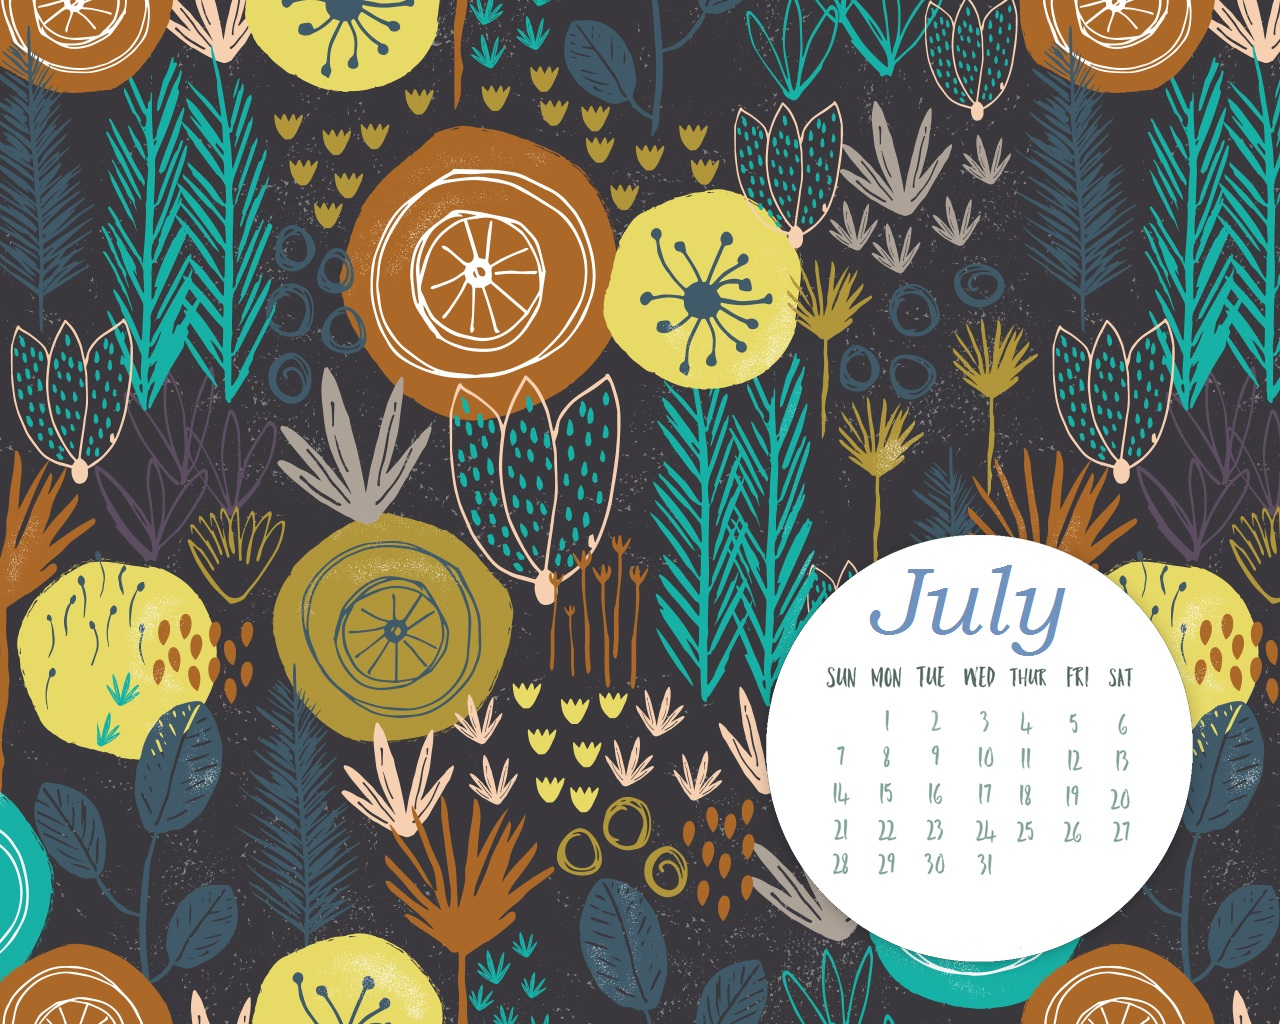 2019 HD Calendar Wallpapers Calendar 2019 1280x1024